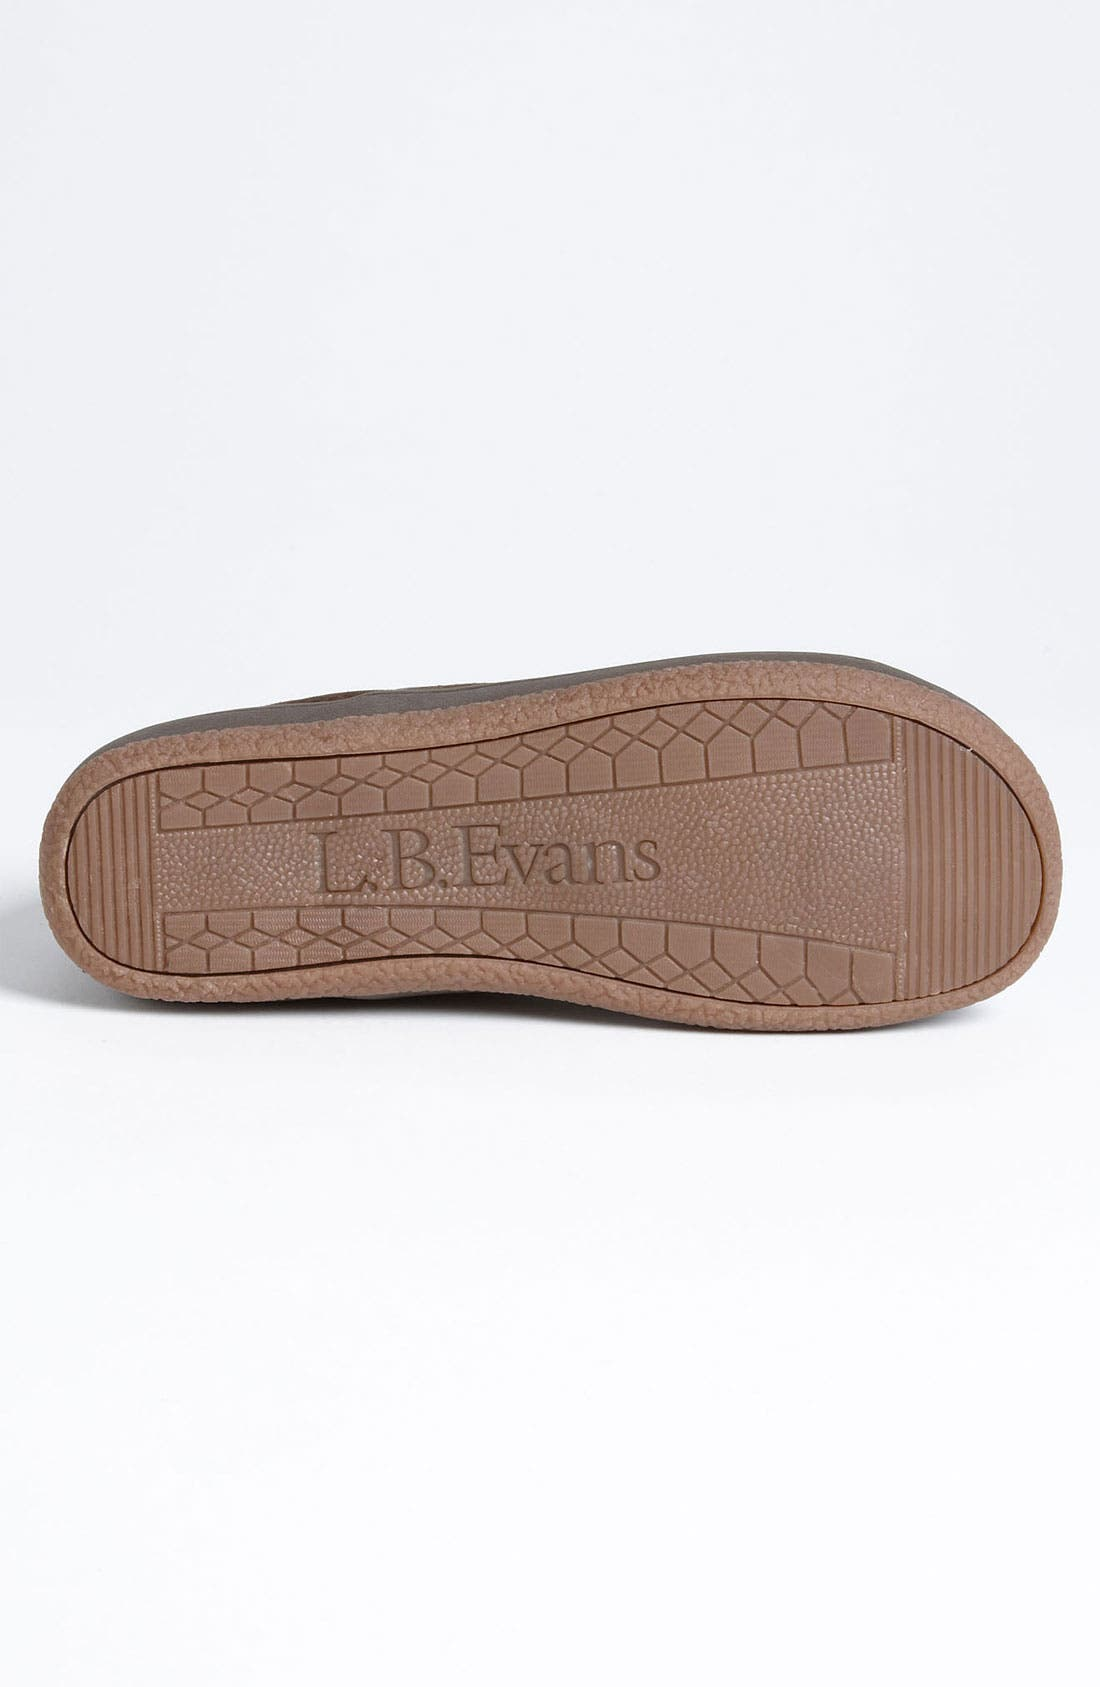 Alternate Image 4  - L.B. Evans 'Reese' Slipper